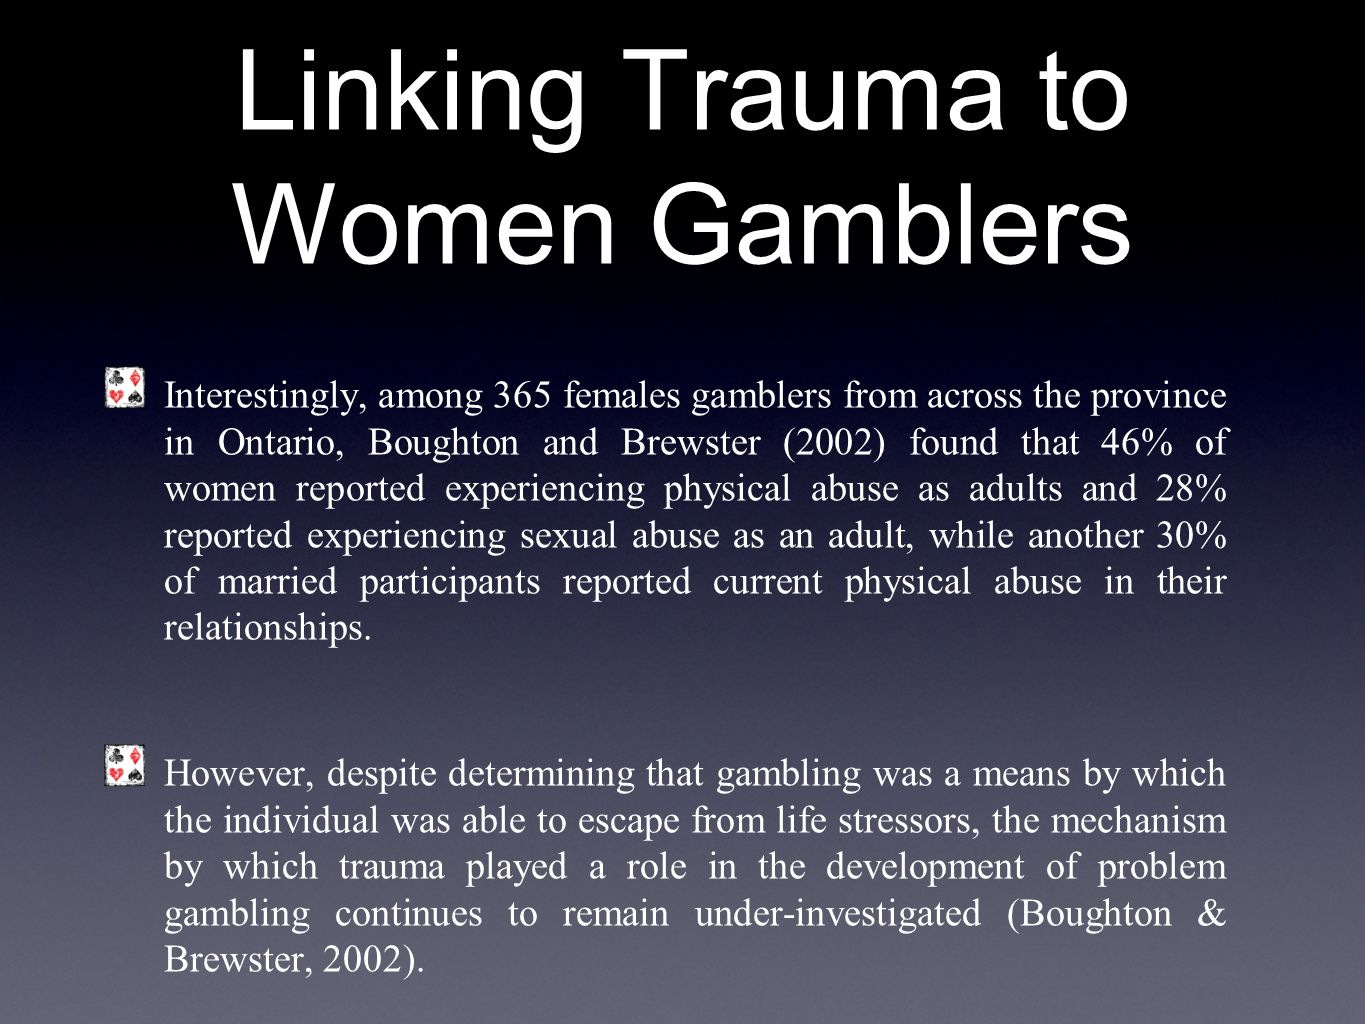 Linking Trauma to Women Gamblers Interestingly, among 365 females gamblers from across the province in Ontario, Boughton and Brewster (2002) found that 46% of women reported experiencing physical abuse as adults and 28% reported experiencing sexual abuse as an adult, while another 30% of married participants reported current physical abuse in their relationships.